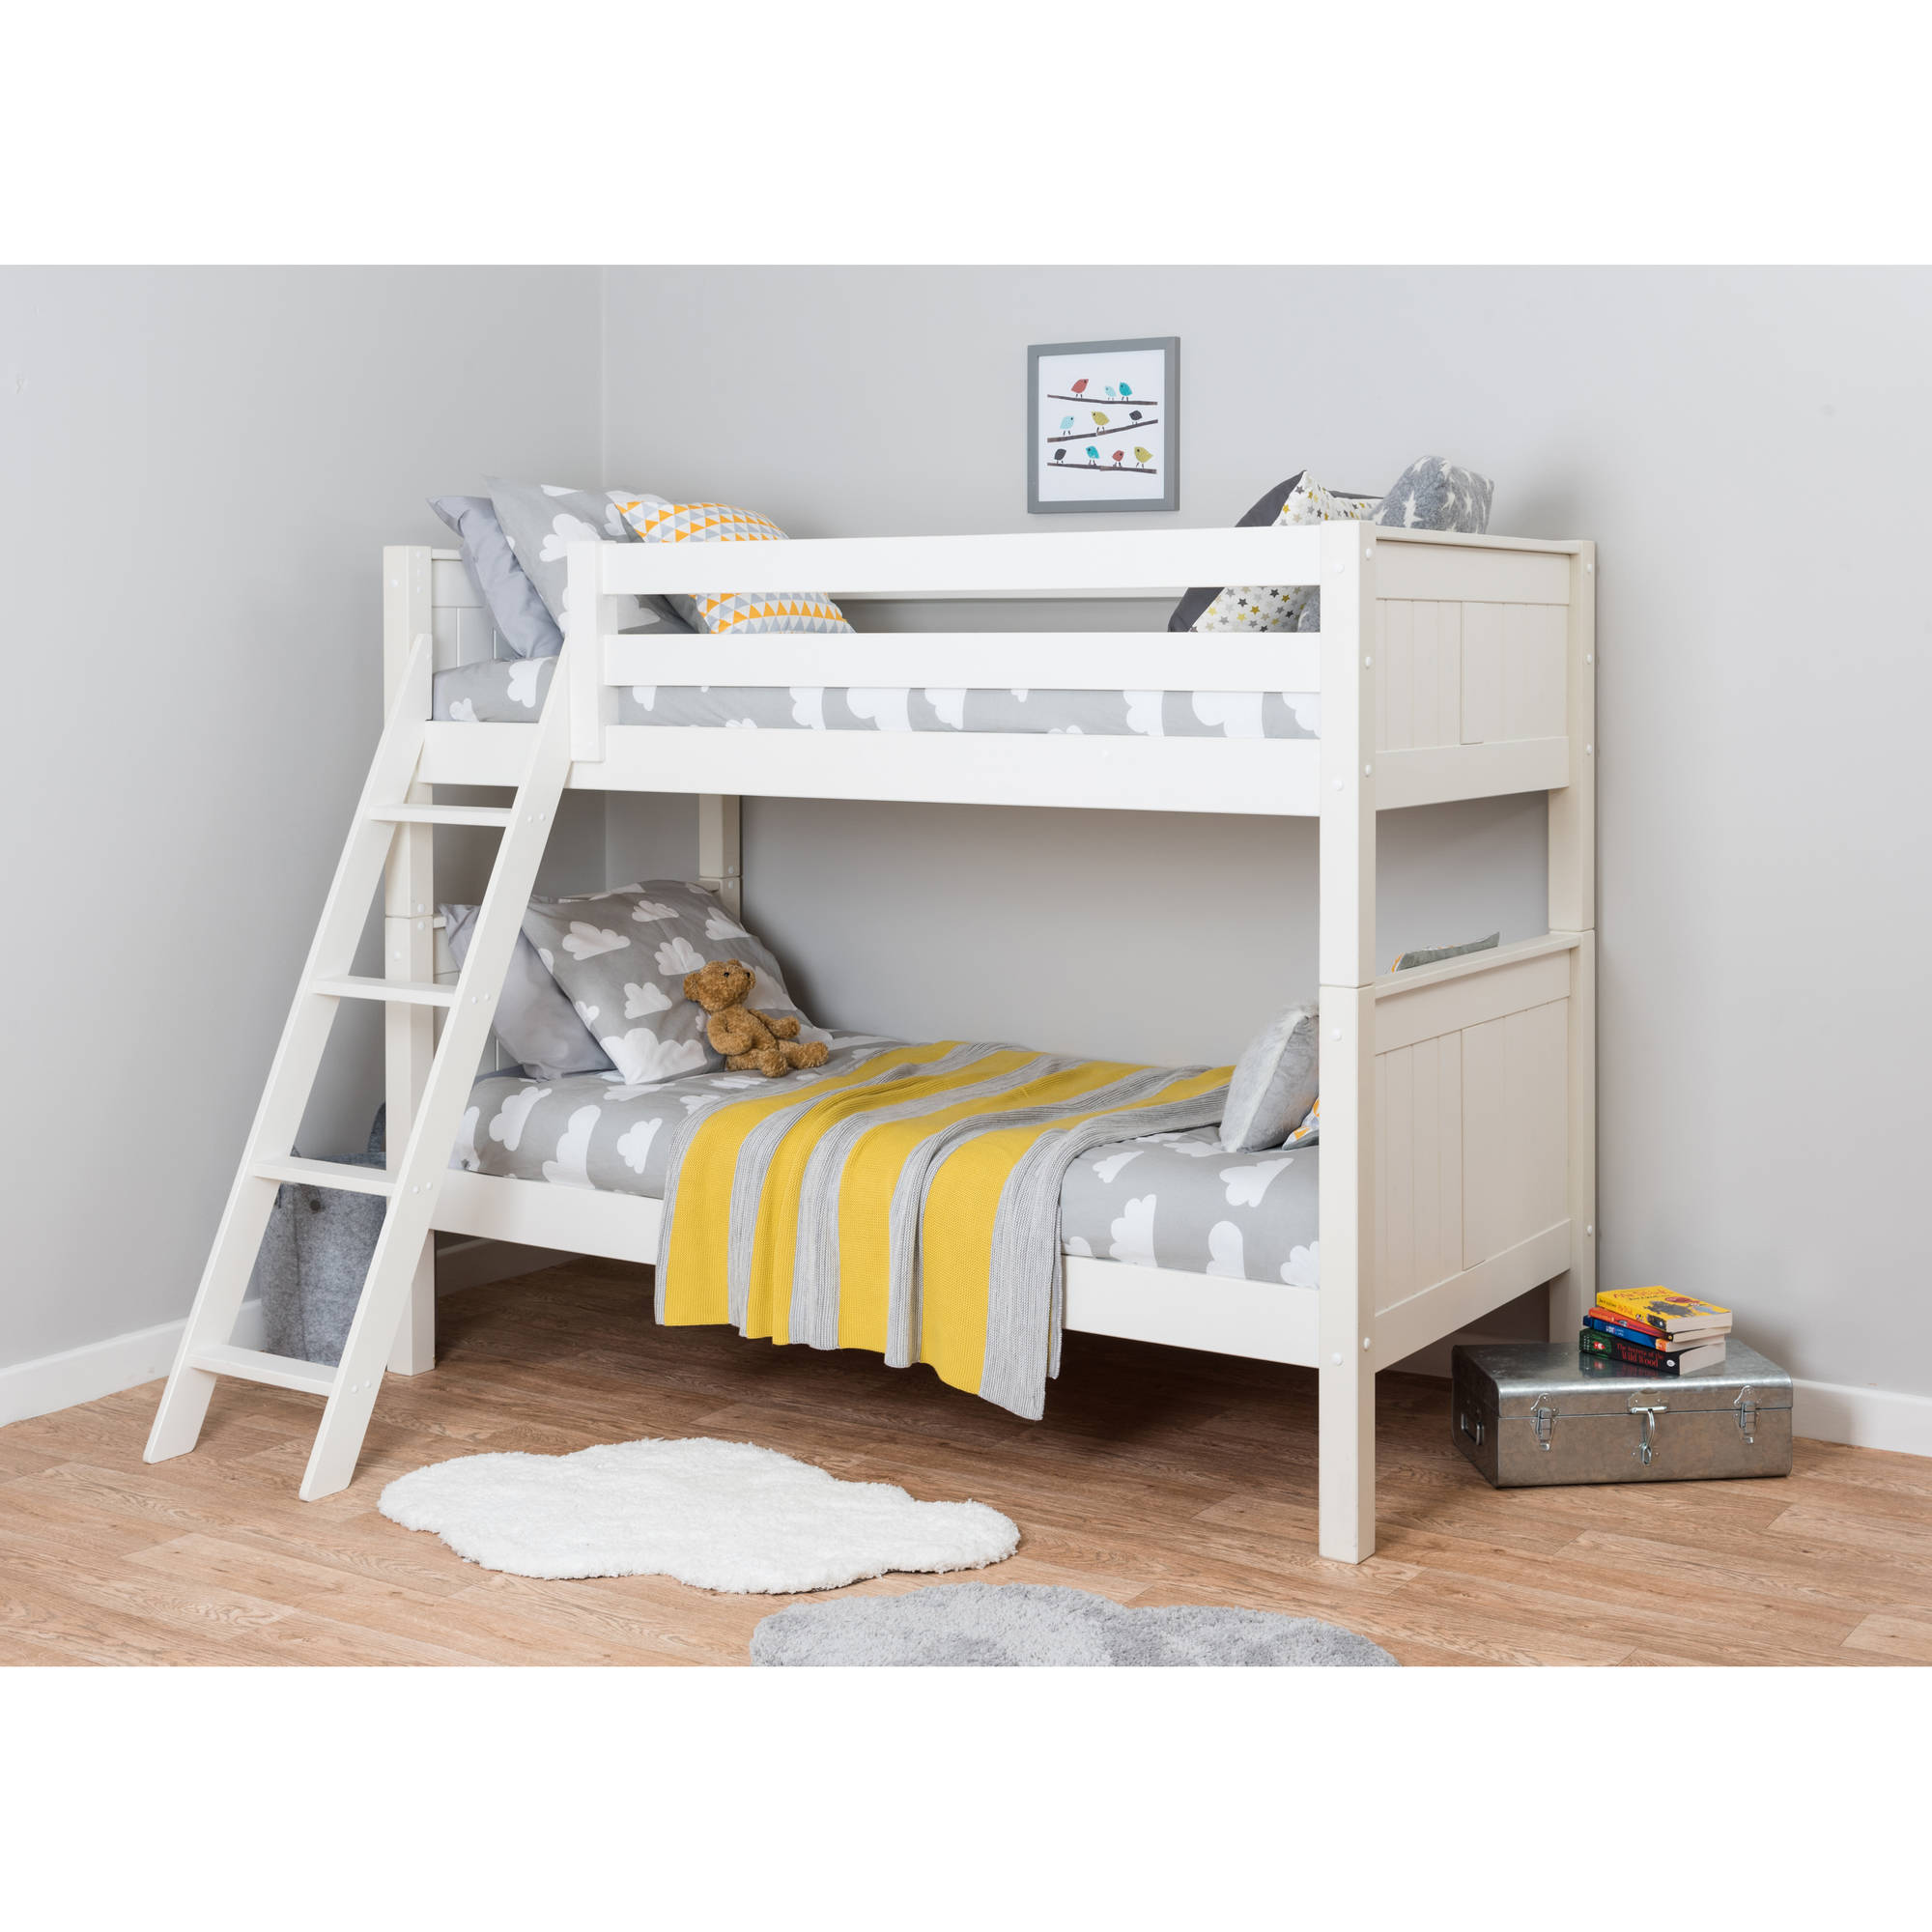 Ace Bayou Classic Twin Over Twin Wood Bunk Bed, White by Ace Bayou